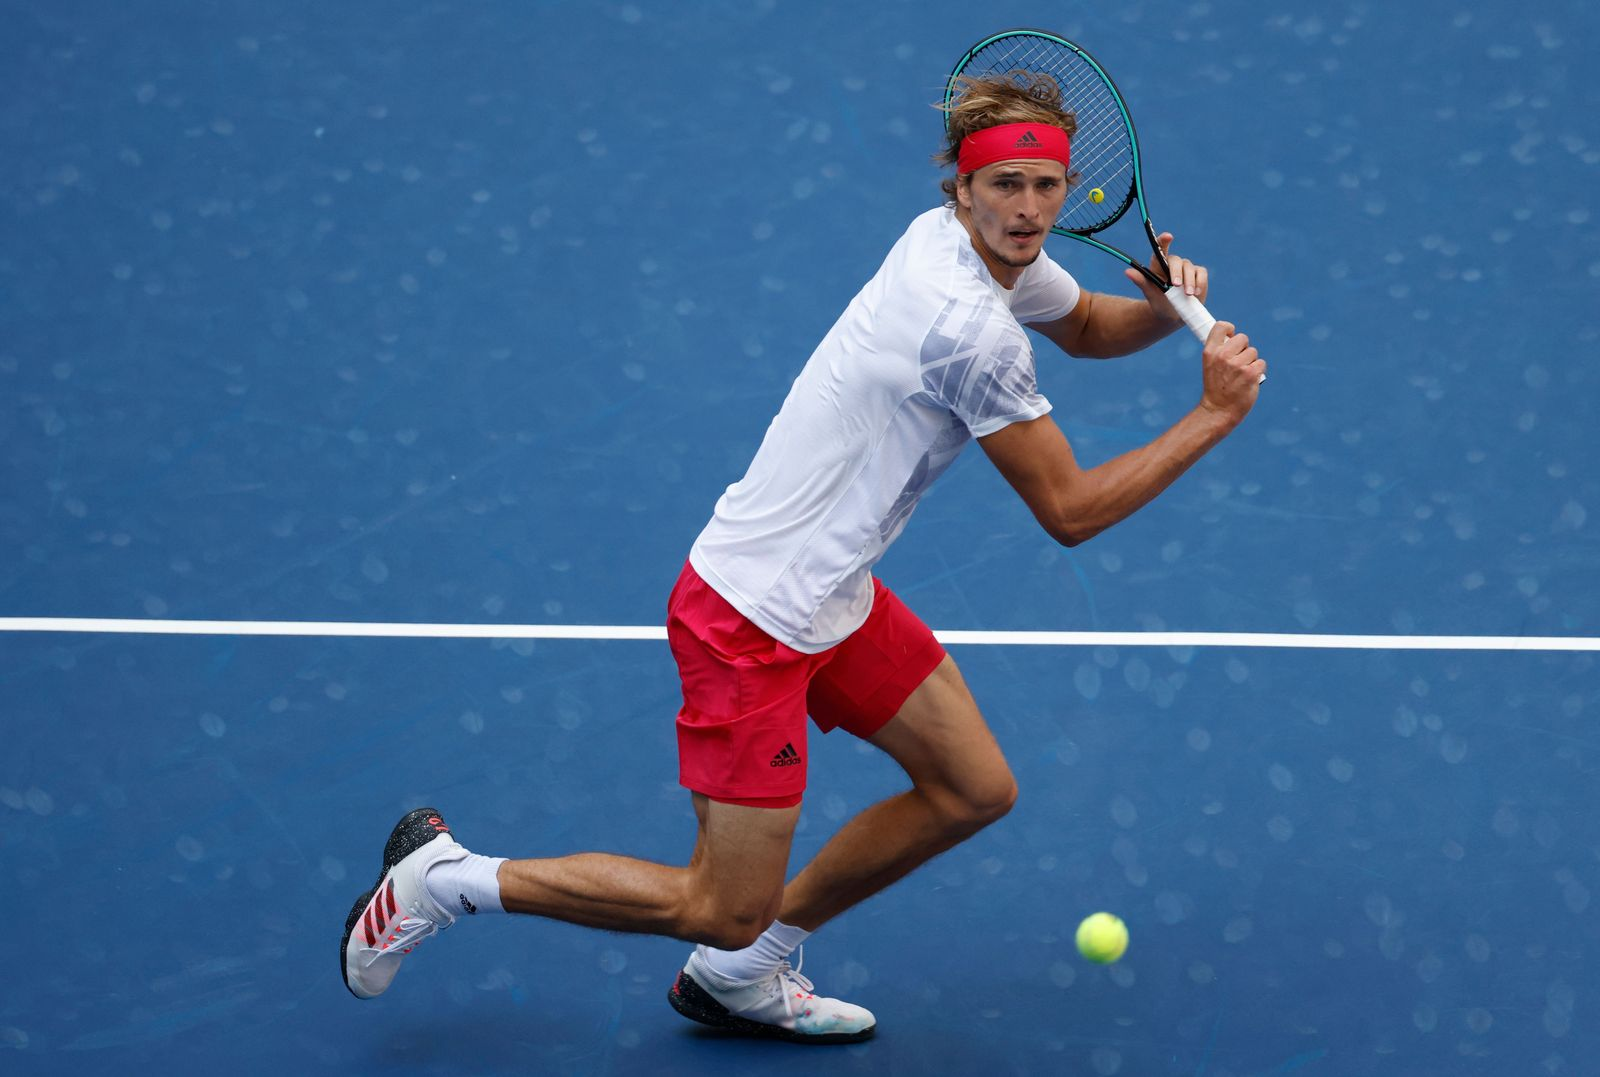 2020 US Open Tennis Championships in New York, USA - 09 Sep 2020